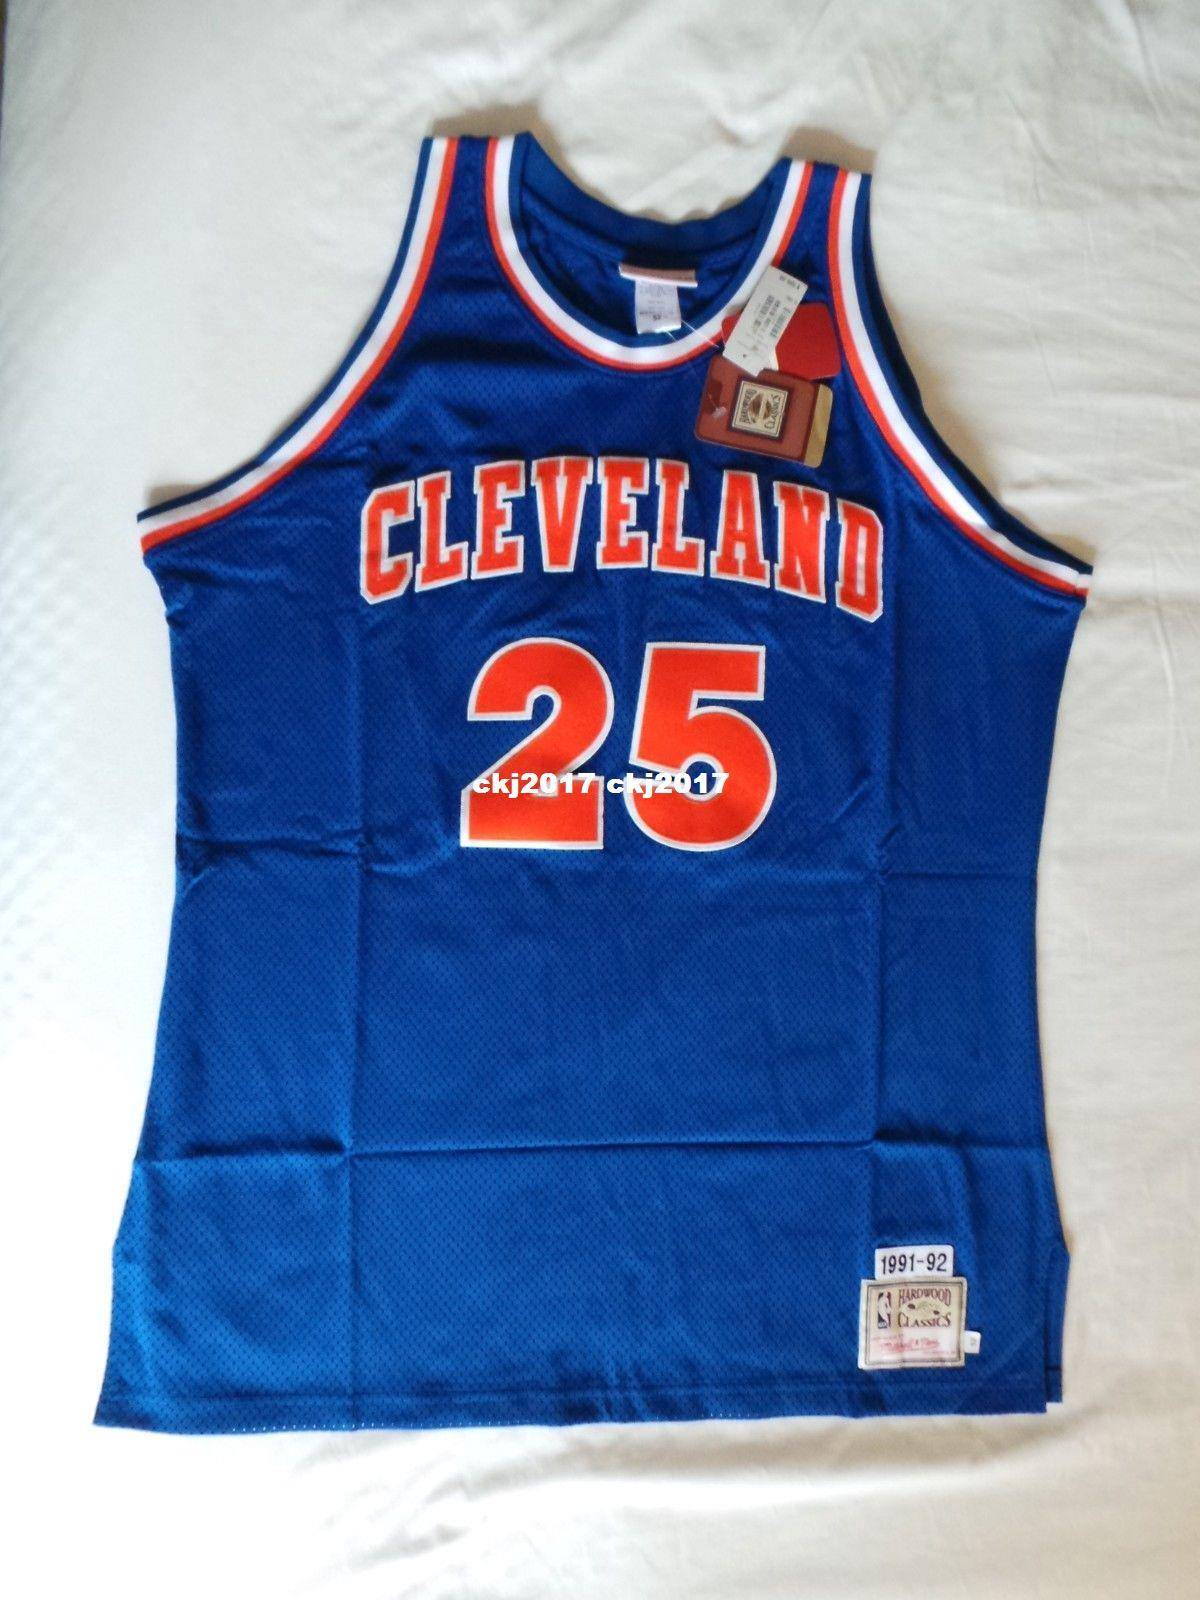 84d483444fc 2019 Mitchell Ness M N Sewn  25 Mark Price Top Jersey NWT NEW Mens Blue  Vest Top Size XS 6XL Stitched Basketball Jerseys Ncaa From Ckj2017